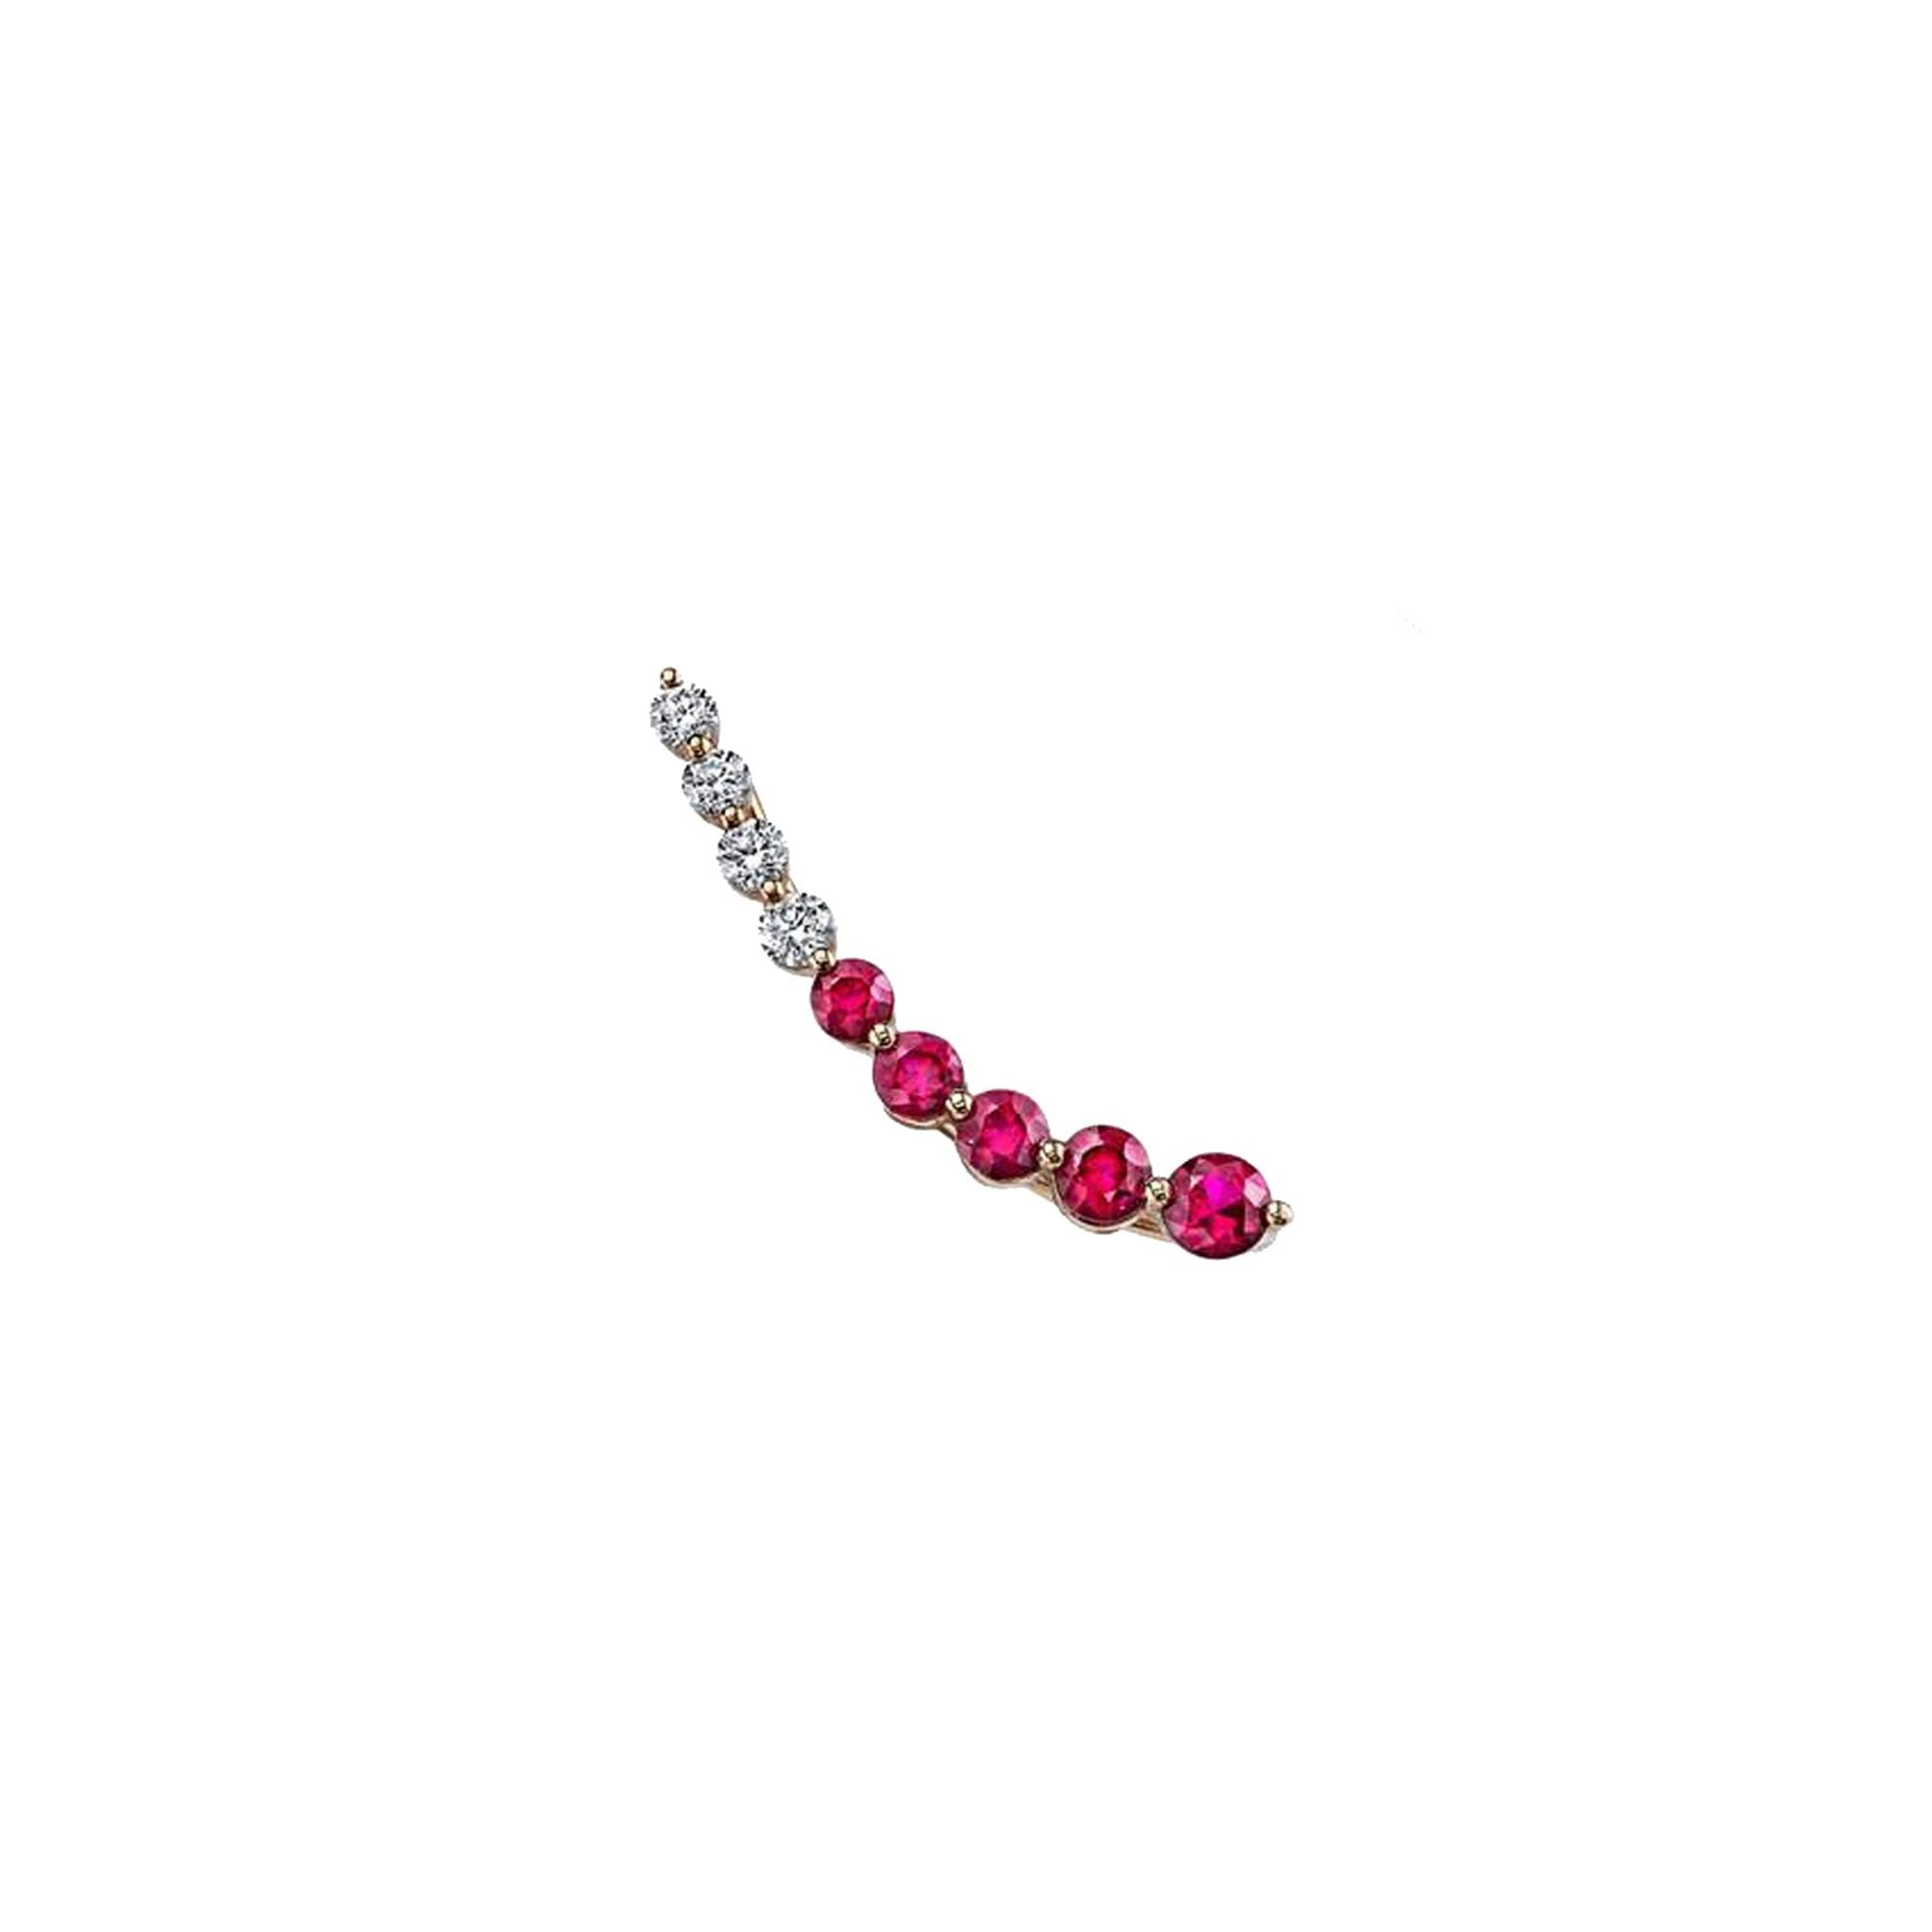 Floating Diamond & Ruby Earring - Right